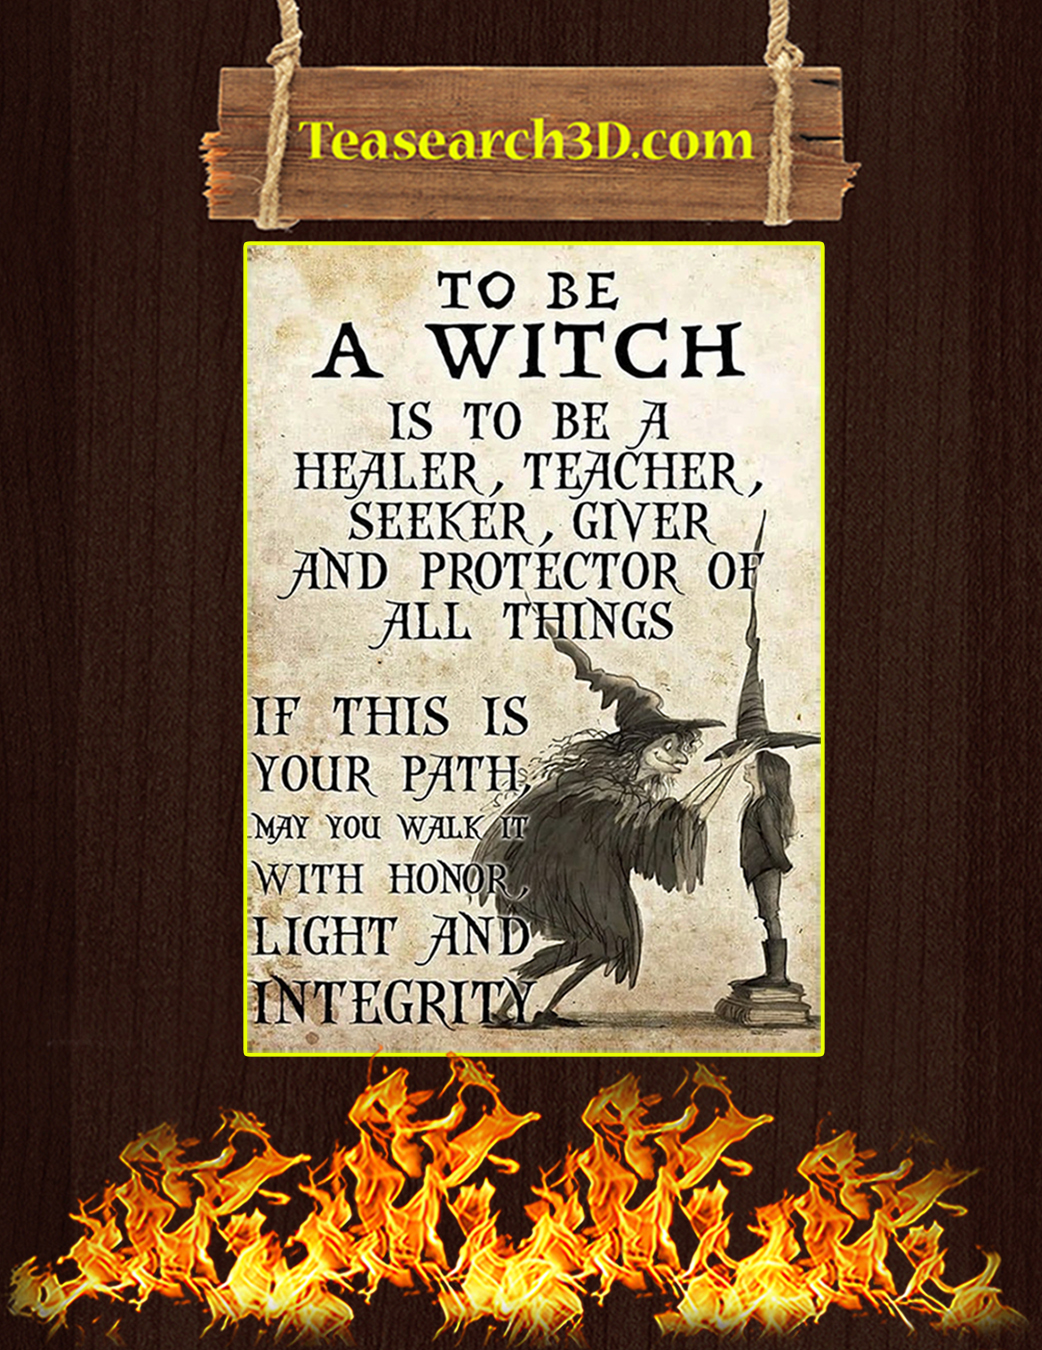 To be a witch is to be a healer teacher poster A1